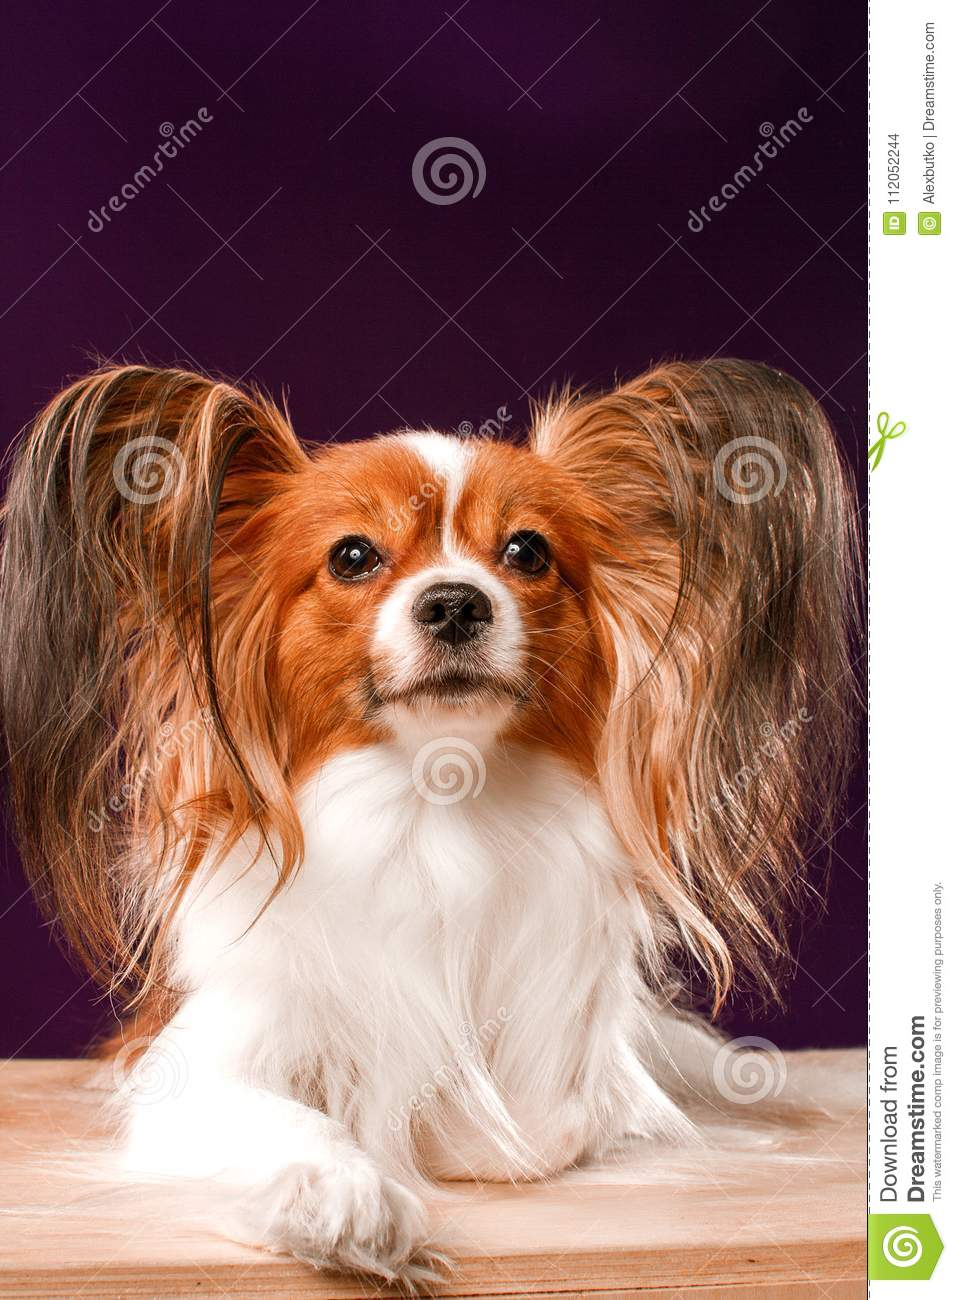 Beautiful Papillon Dog With Smooth Hair And Large Ears On A